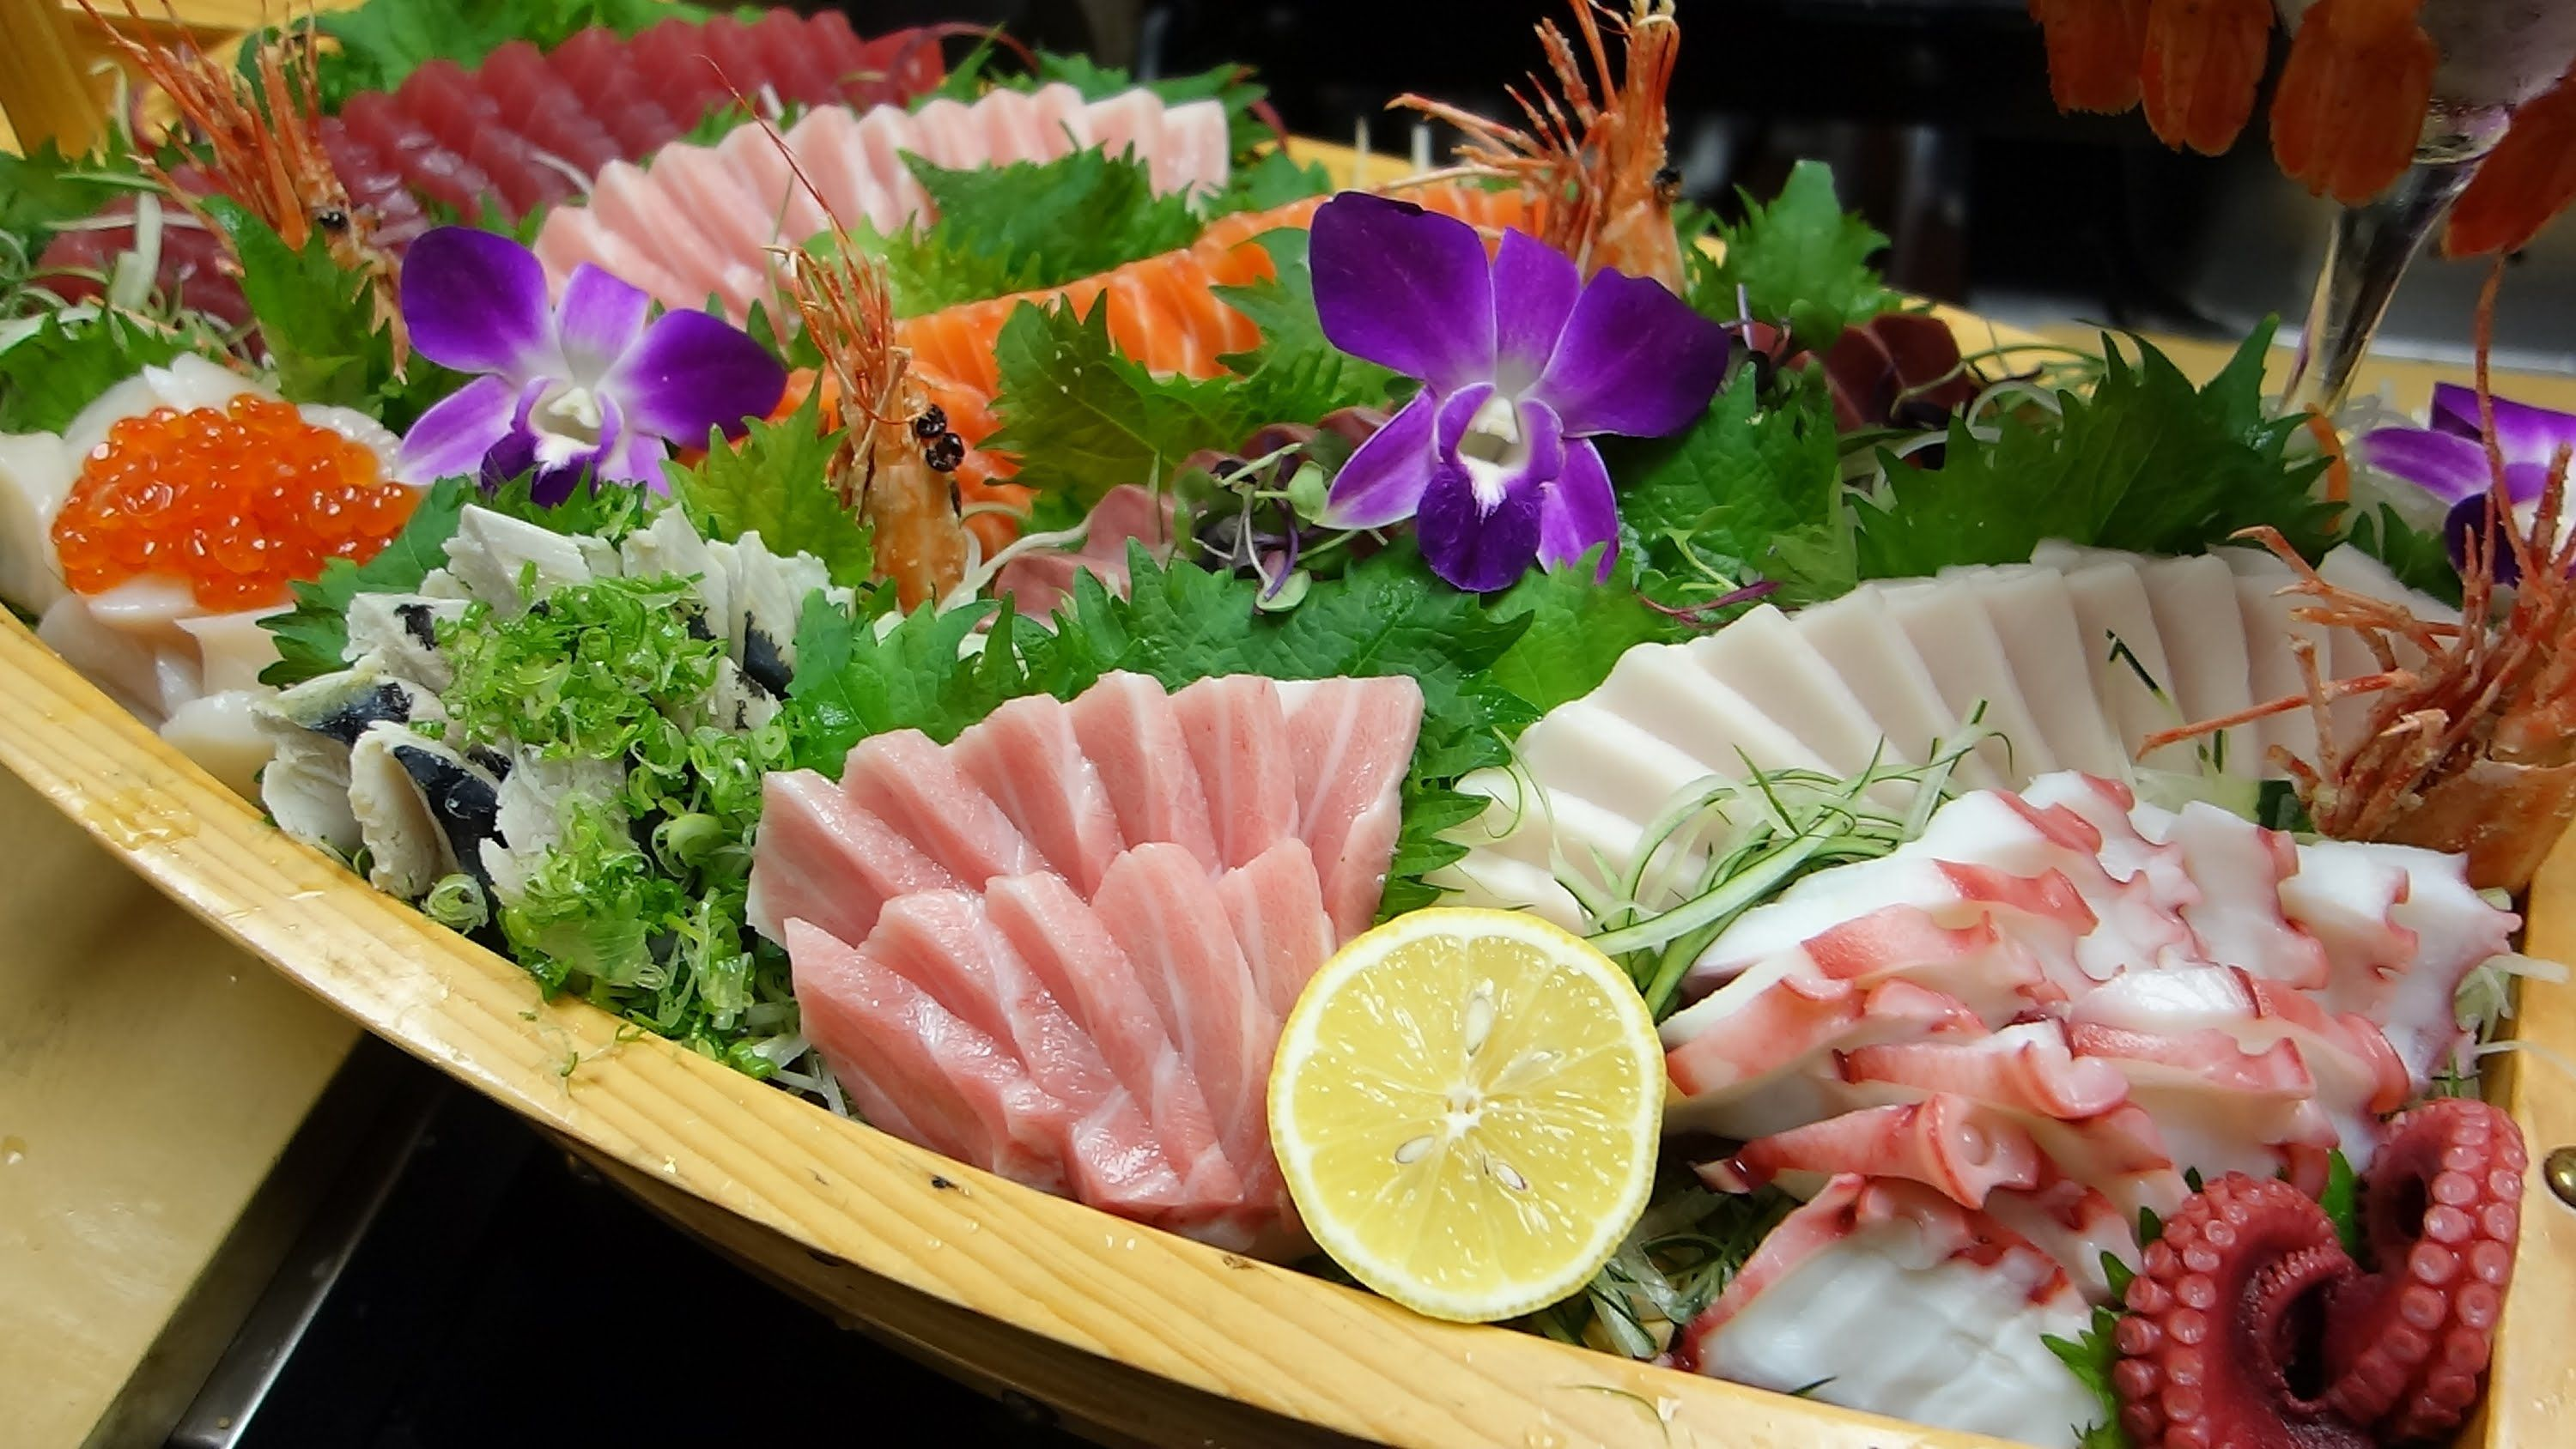 Special Sashimi Boat How To Make Sushi Series Sashimi How To Make Sushi Fruit And Vegetable Carving